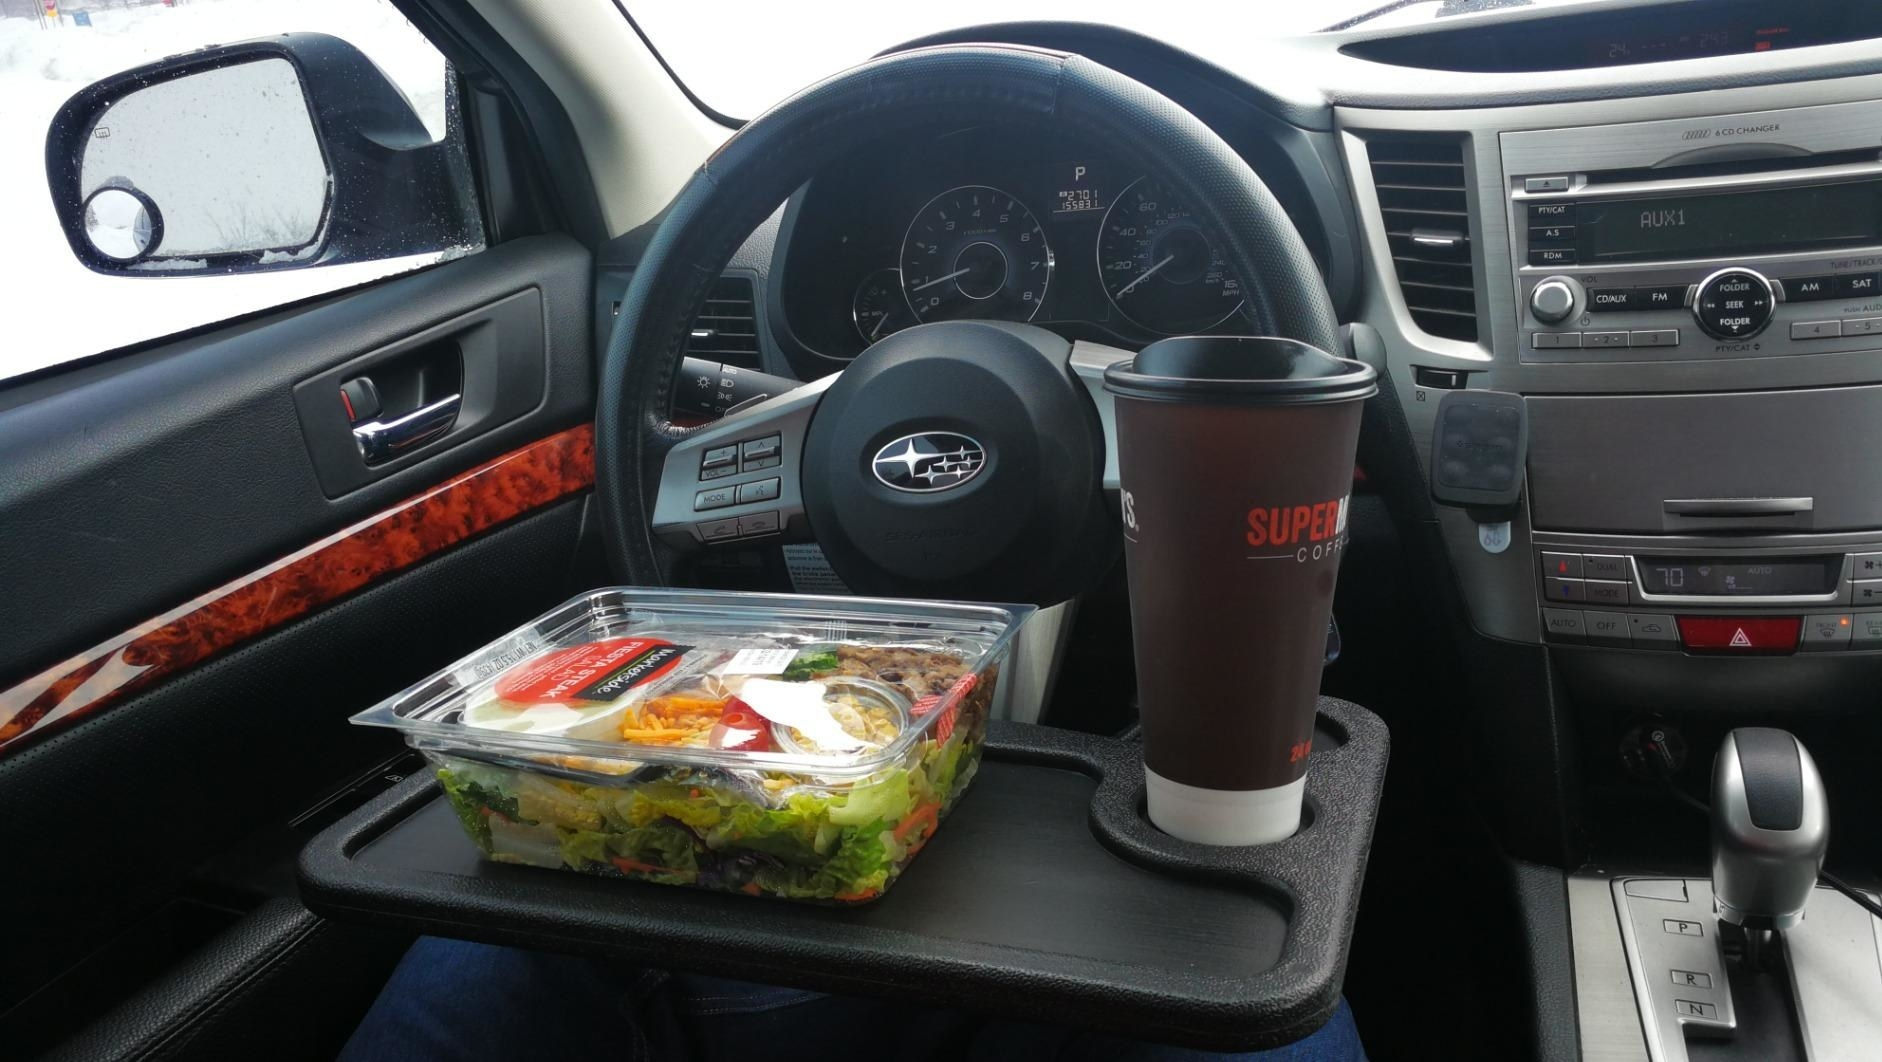 reviewer image of the black tray attached to the steering wheel with a salad and coffee cup on the tray